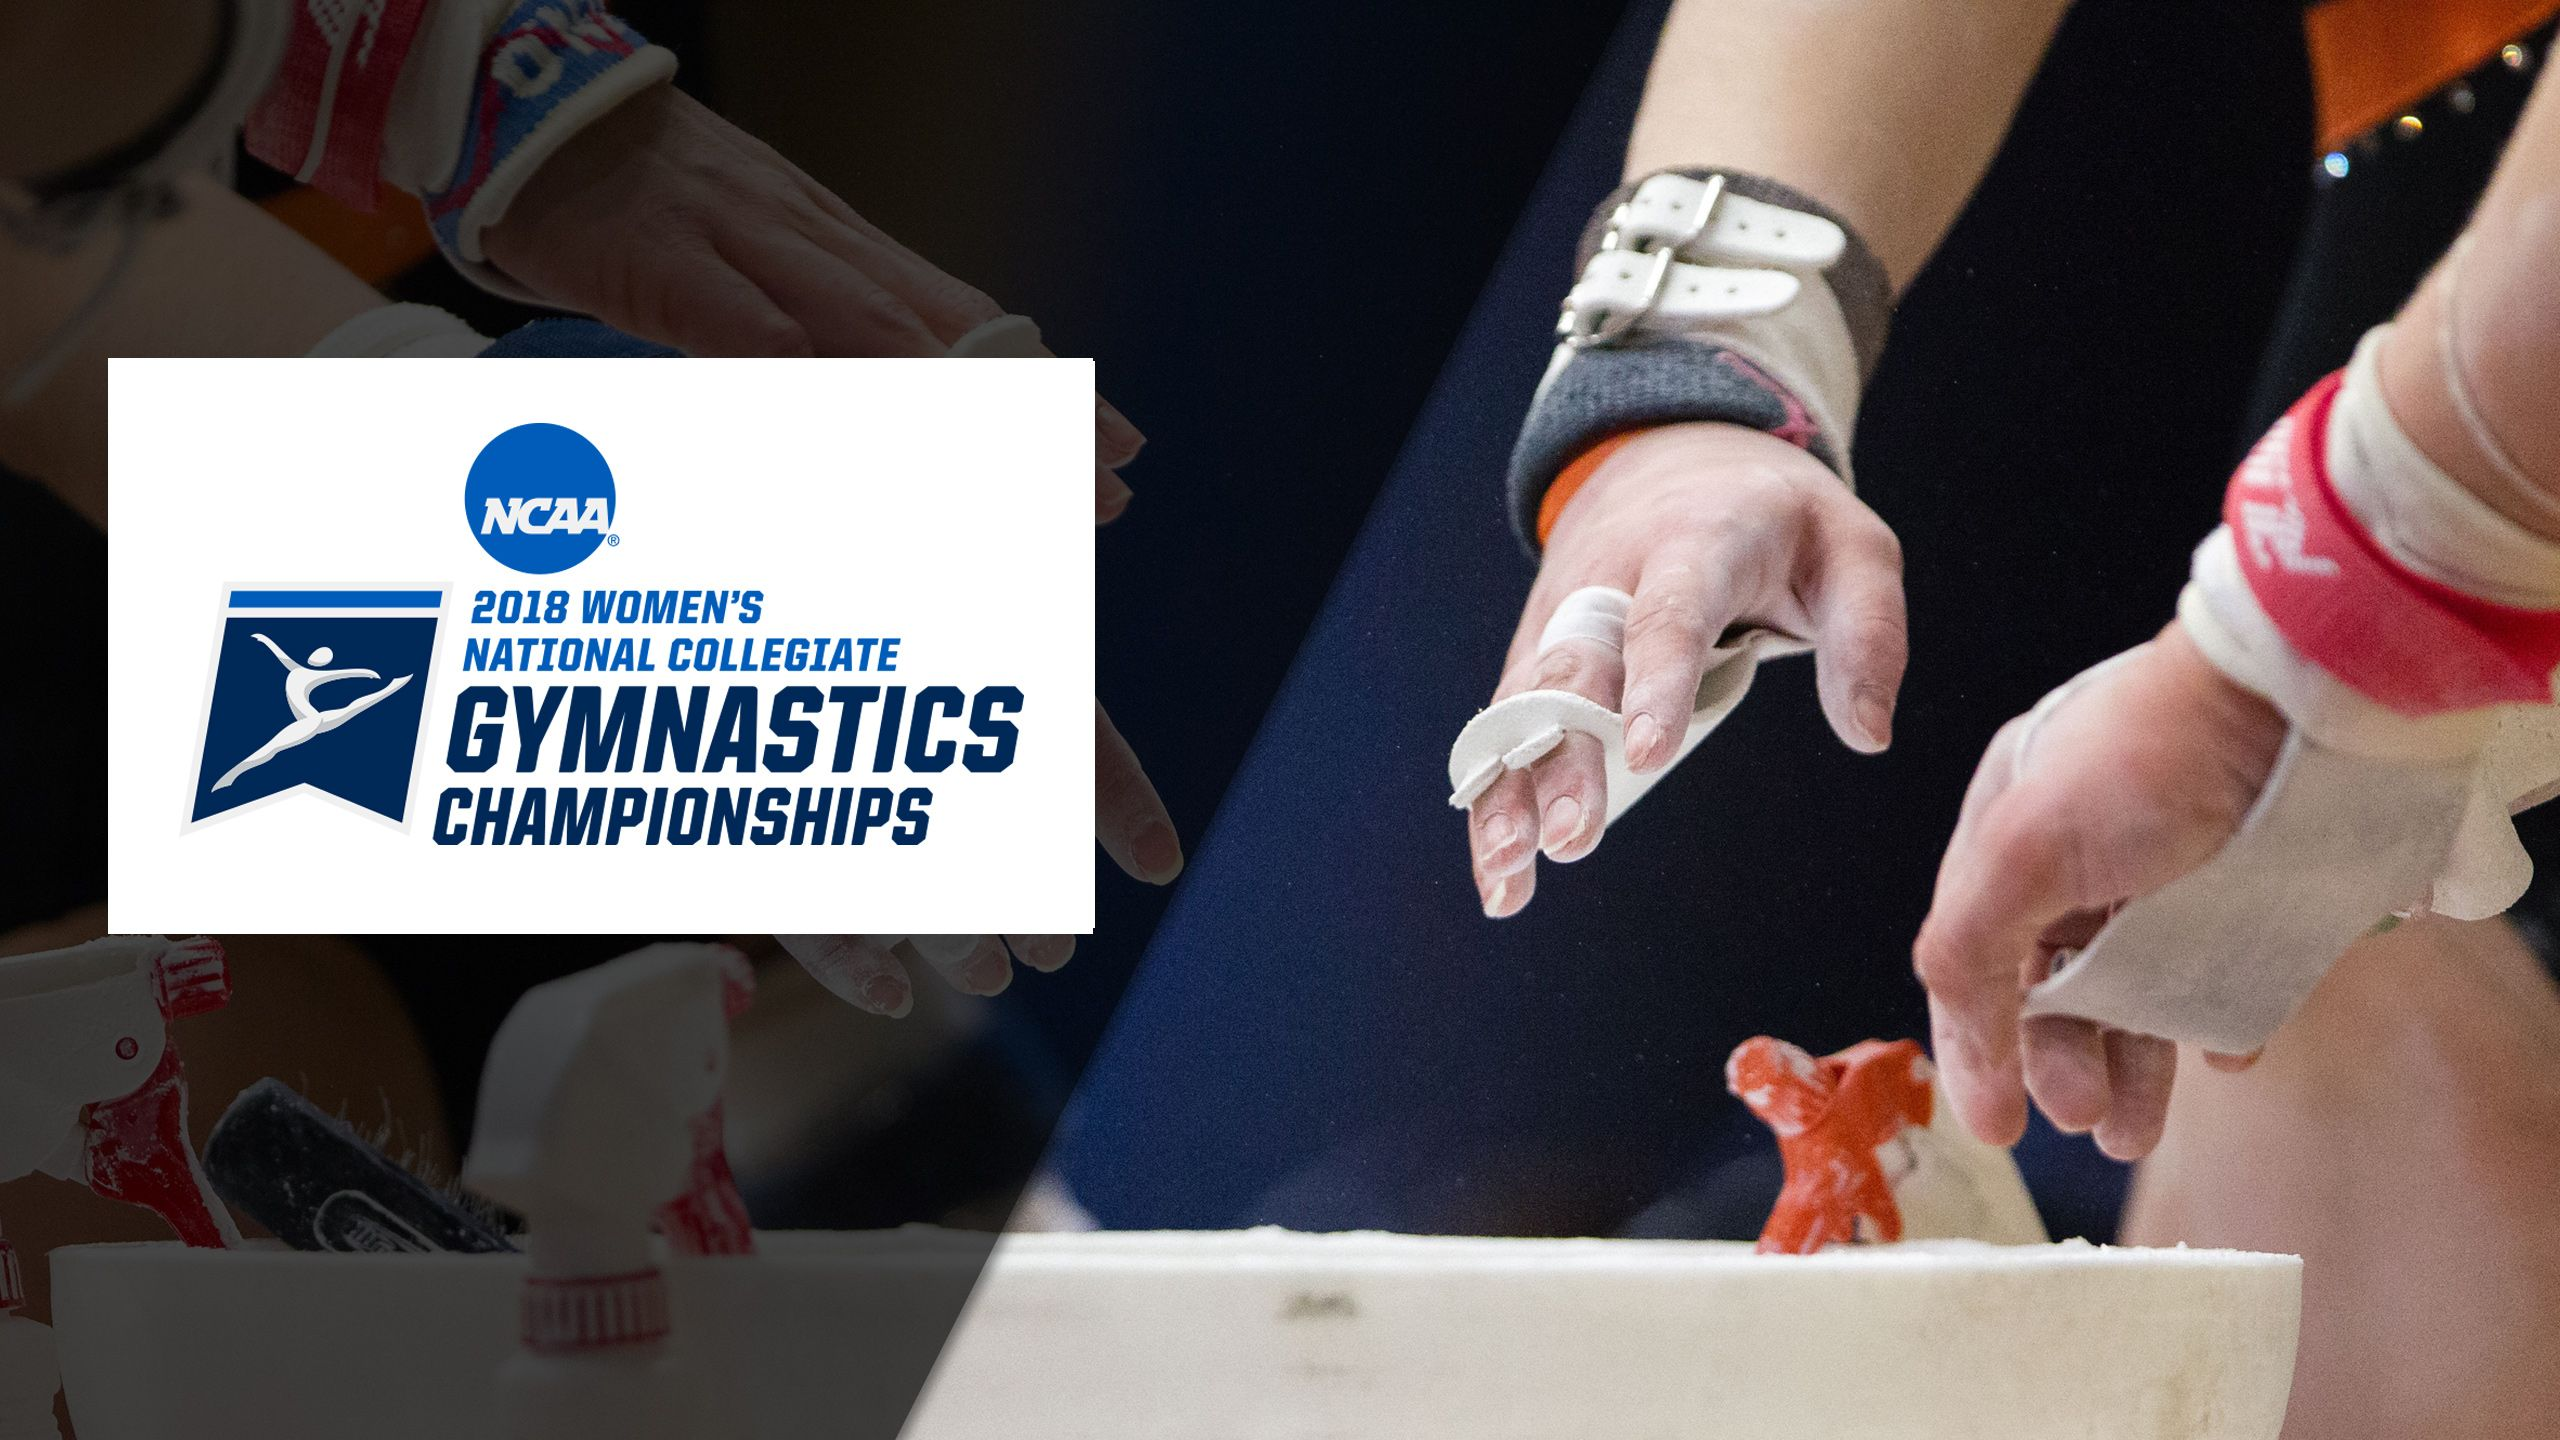 All-Around - 2018 NCAA Women's Gymnastics Championships (Super Six Team Finals)